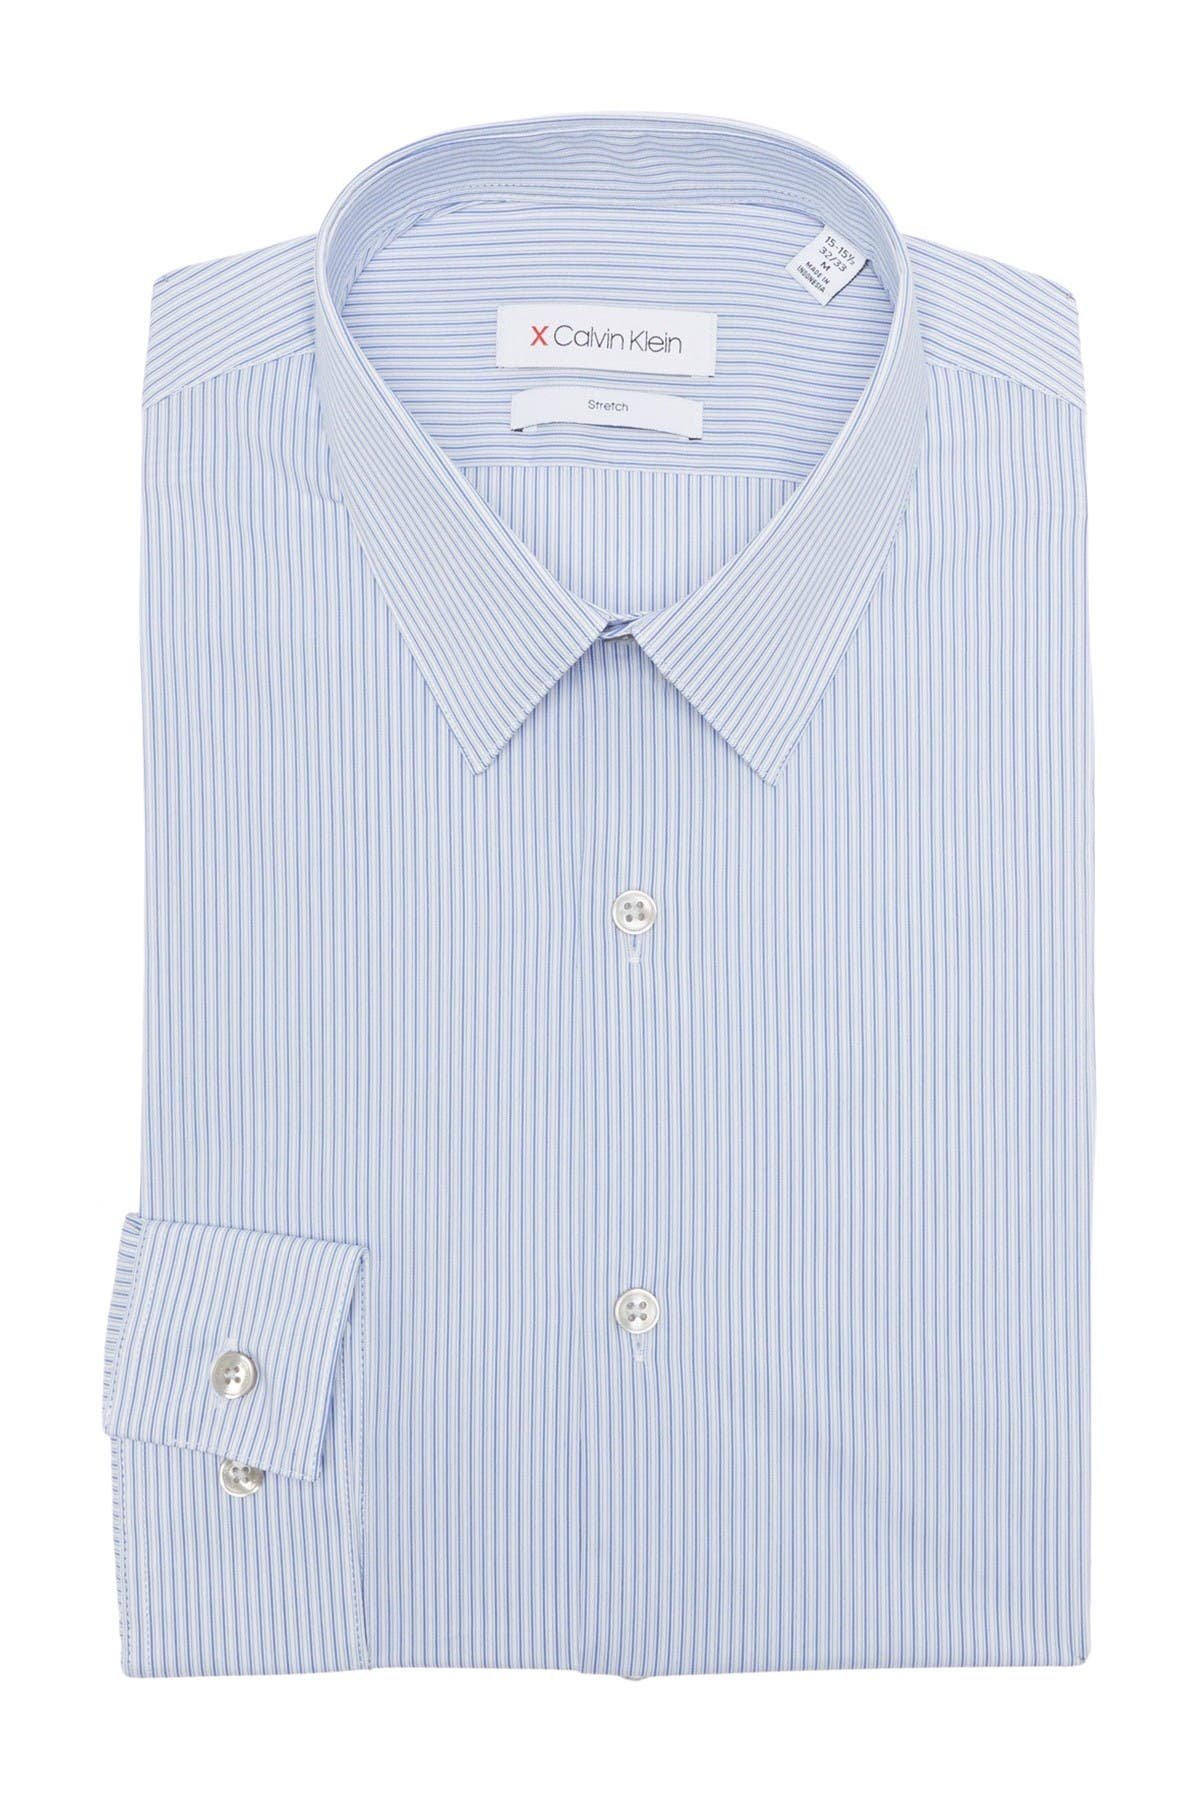 Image of Calvin Klein Striped Extreme Slim Fit Stretch Dress Shirt